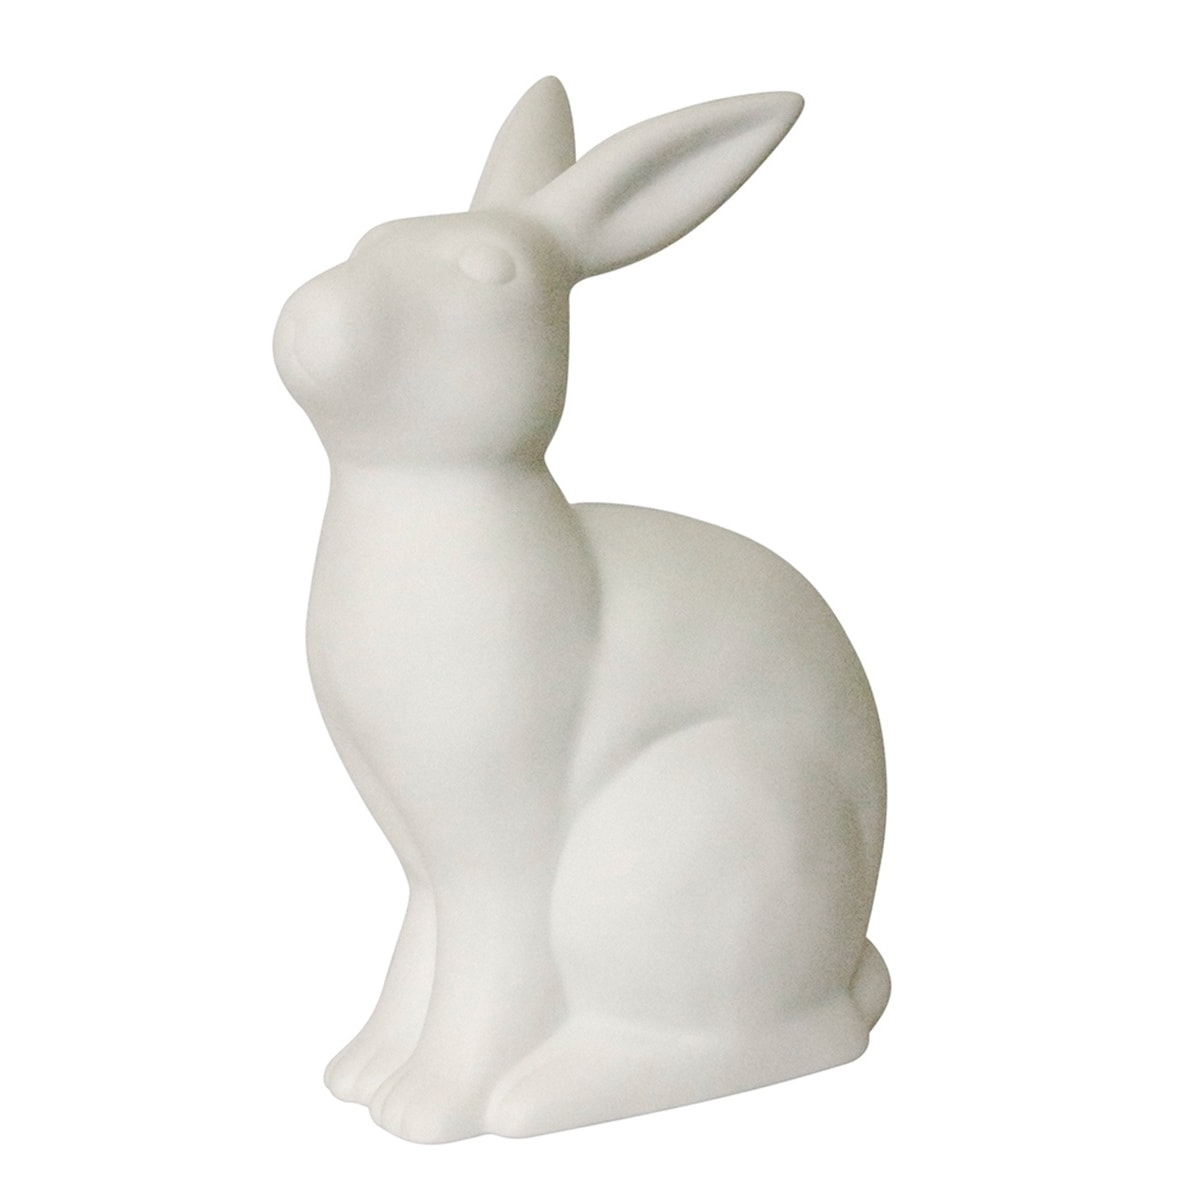 p lamps wht lamp rabbit white simple love bunny shaped table porcelain animal designs in